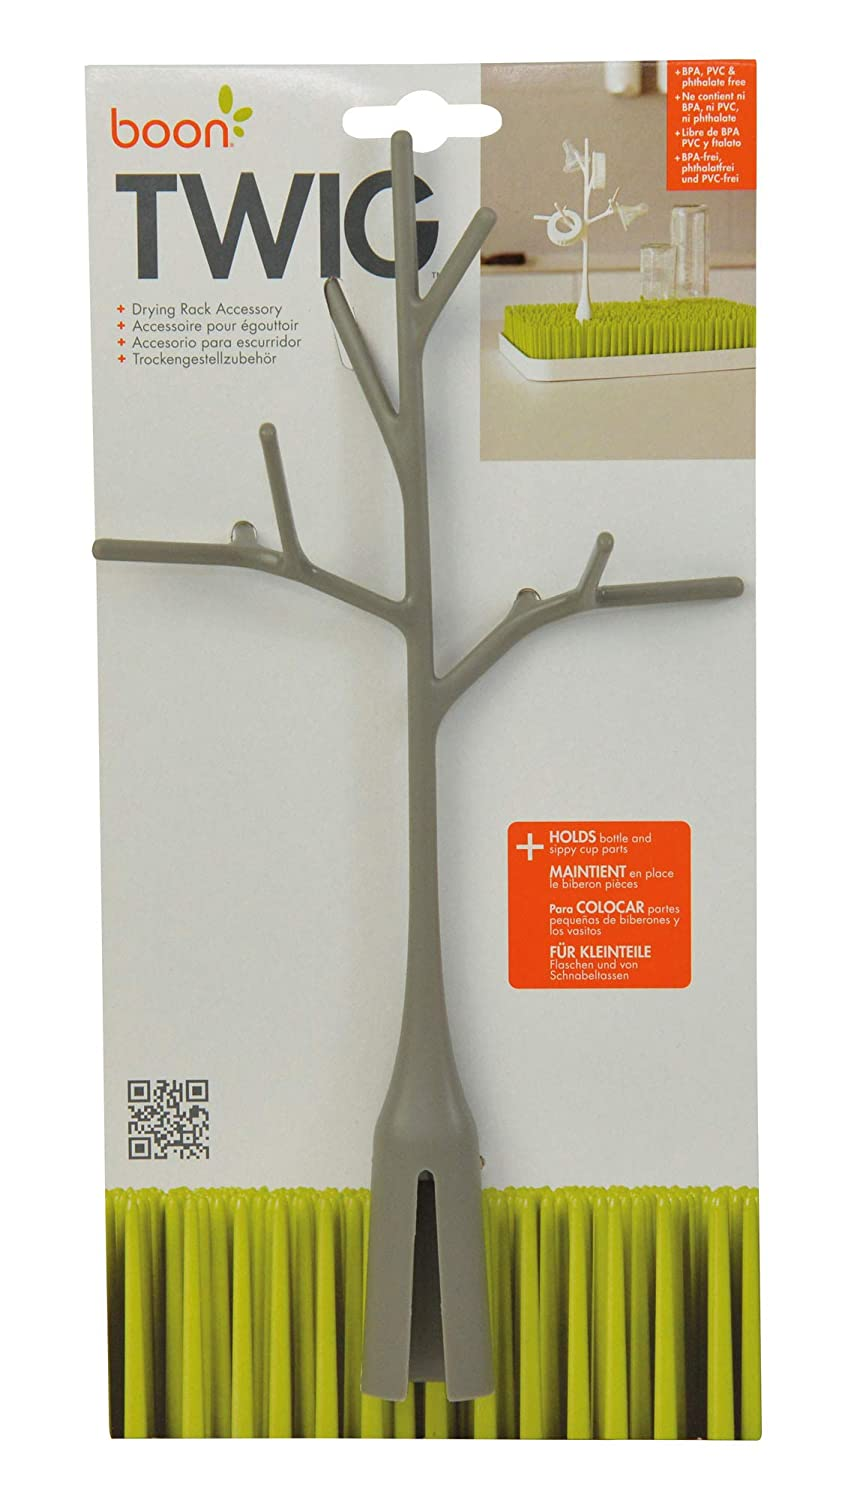 Warm Gray Bottle Holder Storage Drying Rack Whybee B357 Boon TWIG Grass Accessory